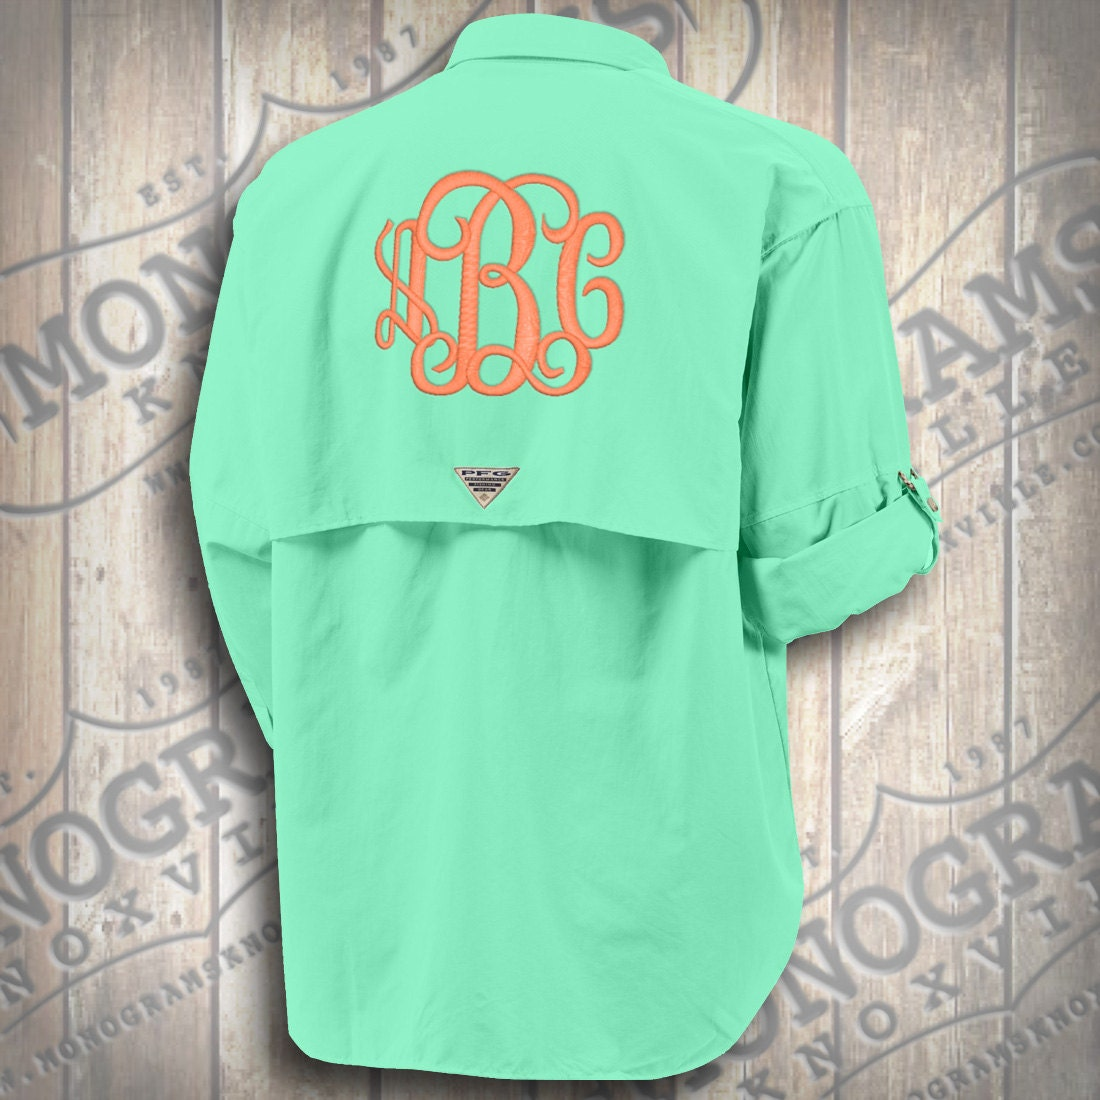 Monogrammed fishing shirt columbia pfg men 39 s aqua bahama for Monogram fishing shirt